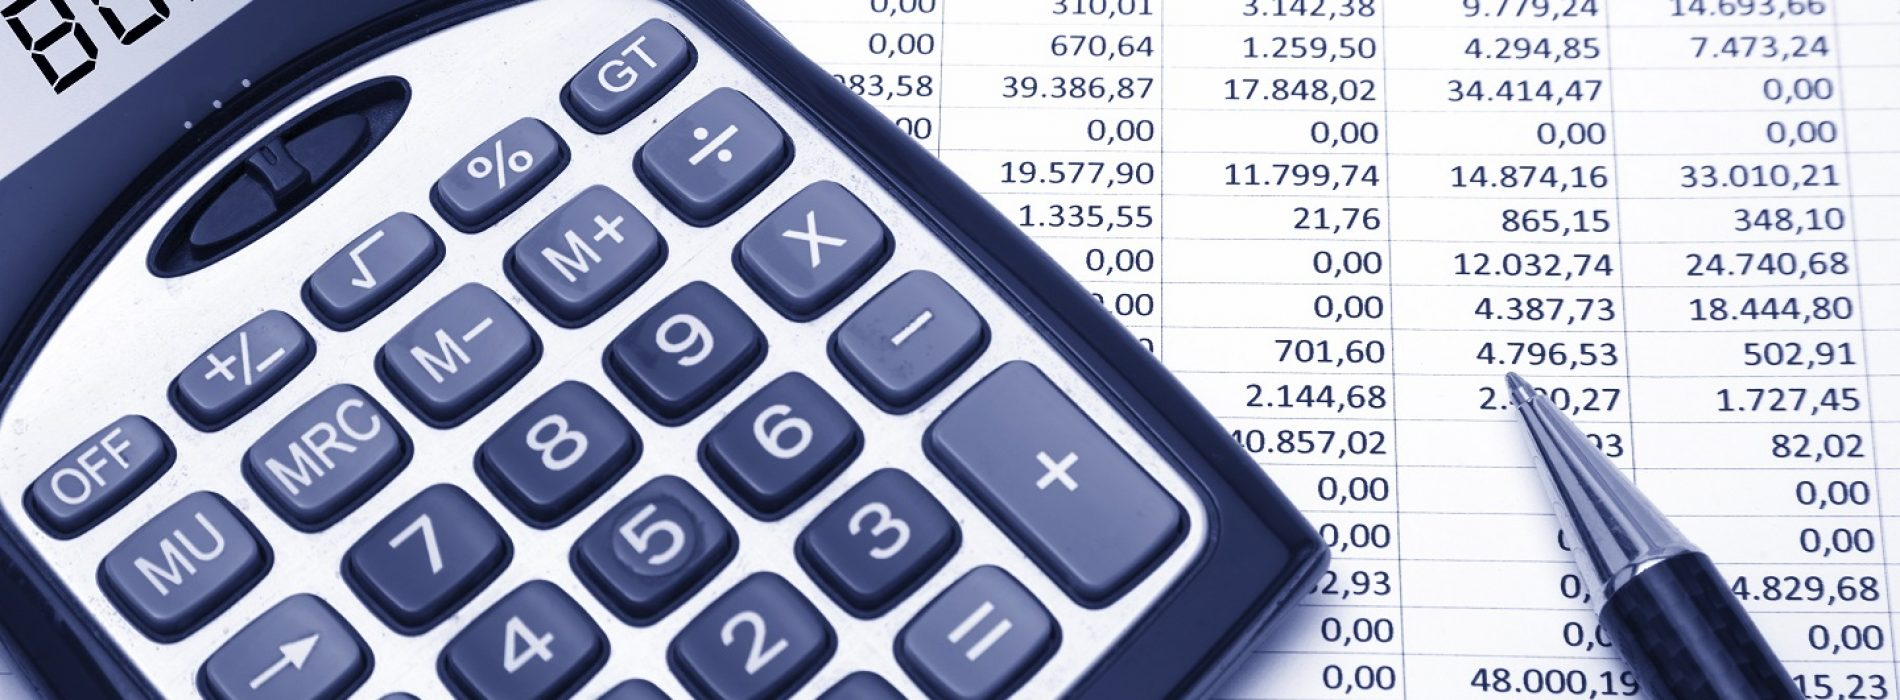 Behavioural aspects in budgeting